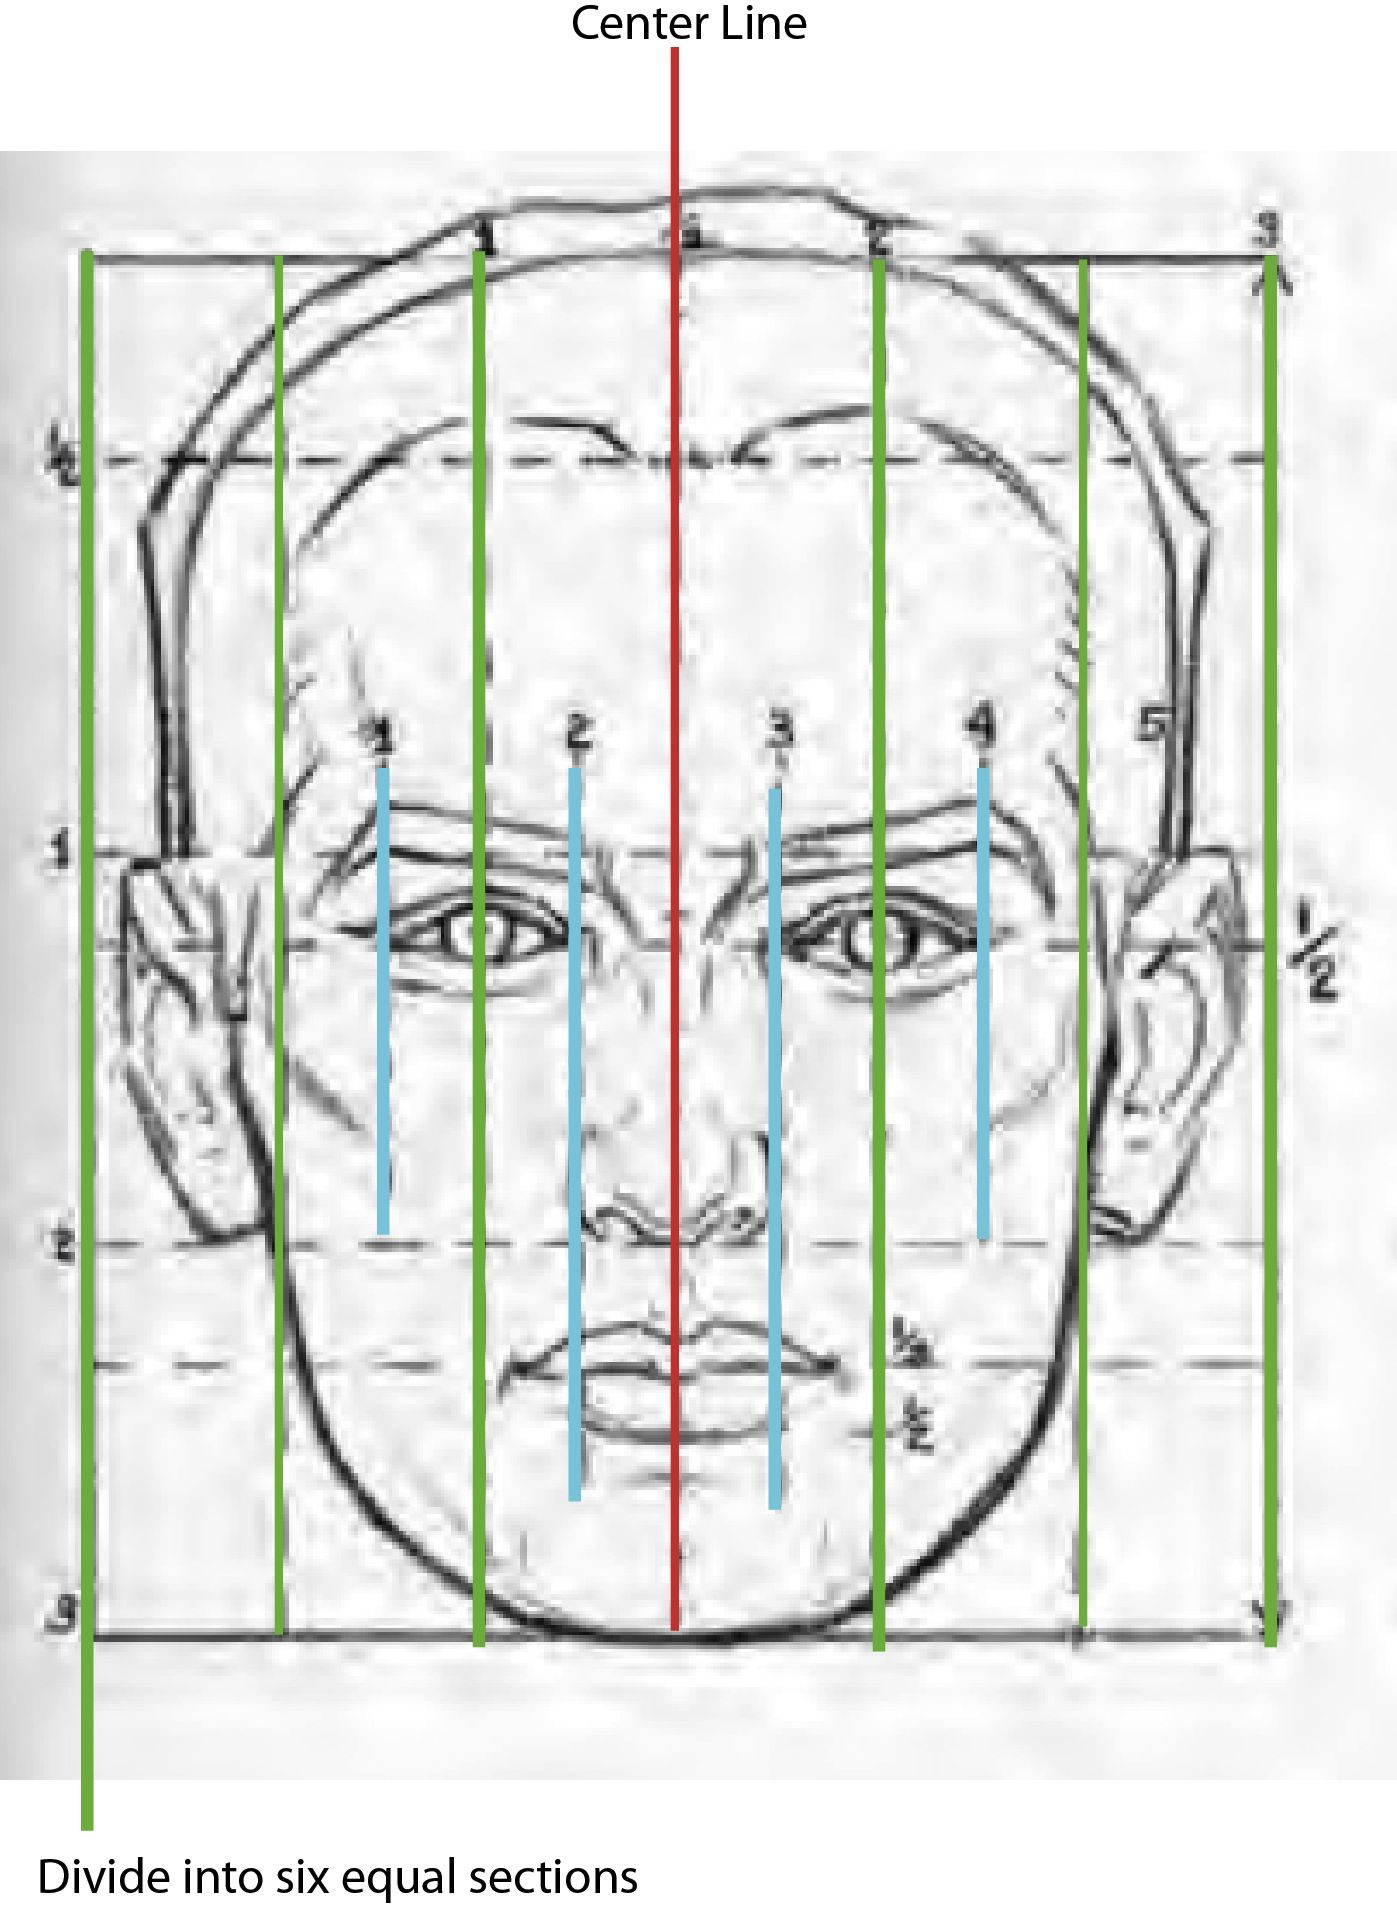 MaleHead-VerticalLines-1 | Facial proportions, Face ...